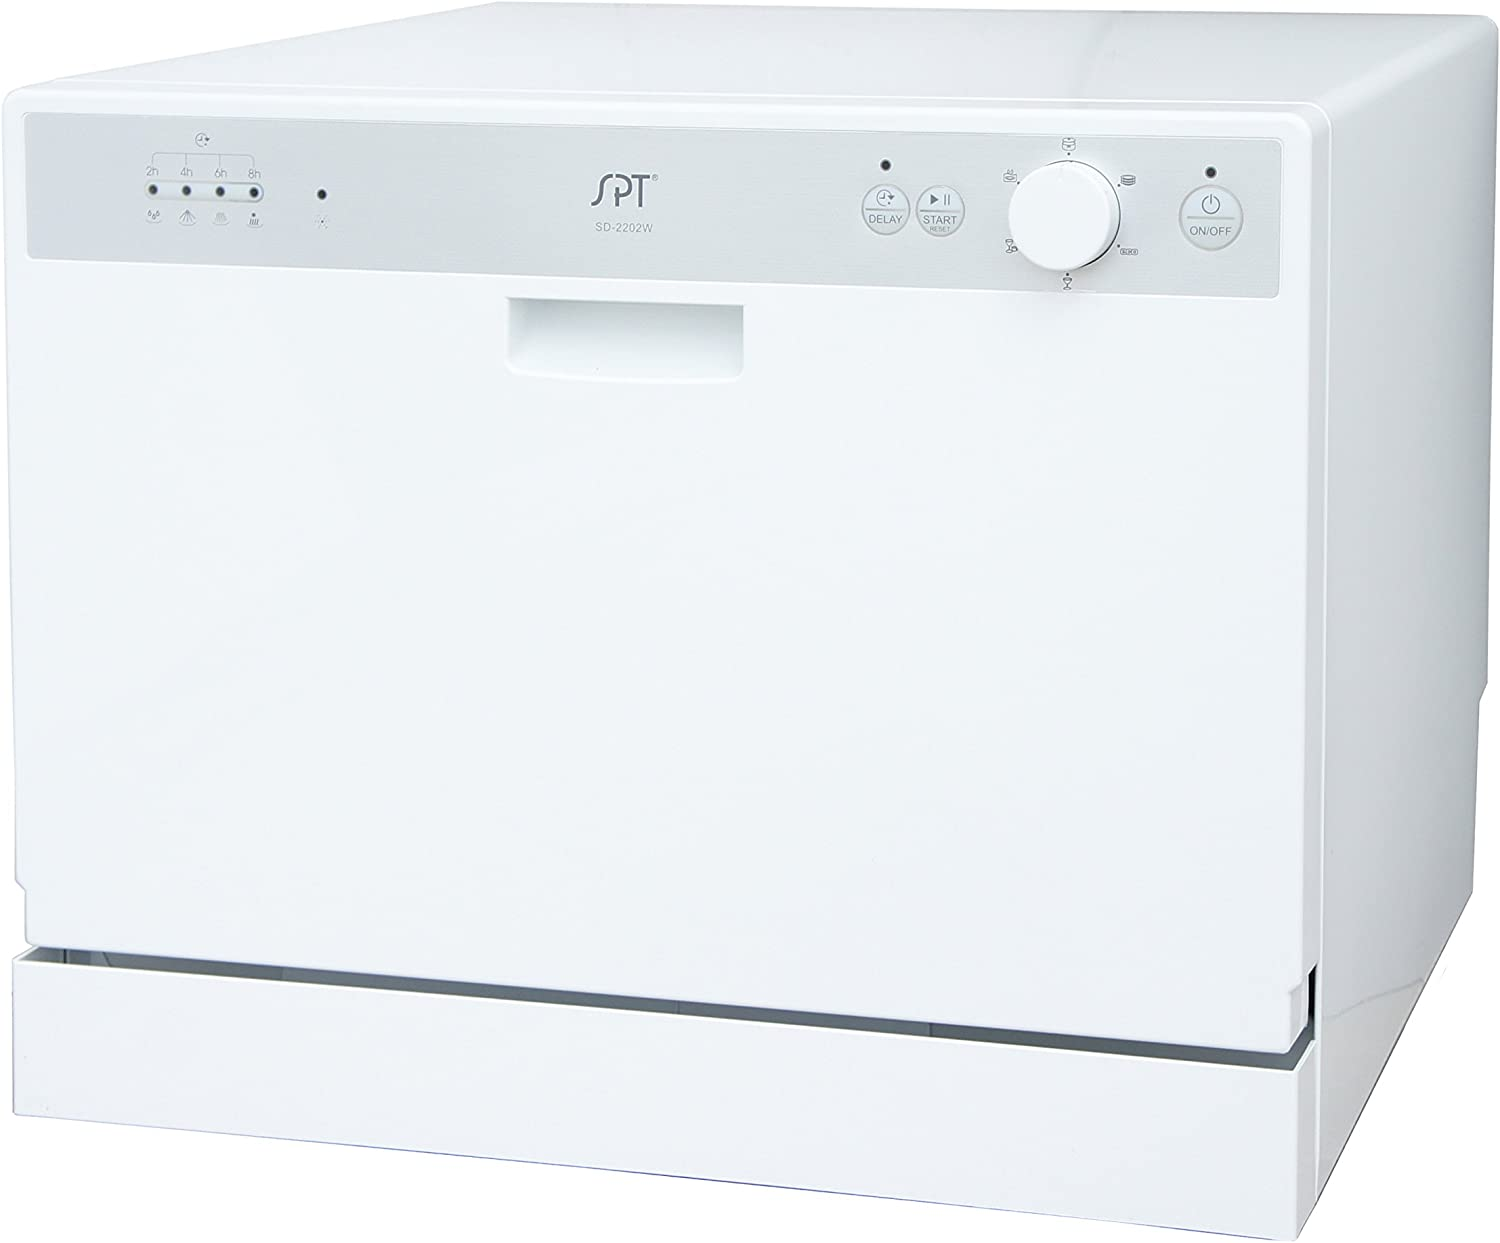 10 BEST Countertop Dishwashers of March 2020 11